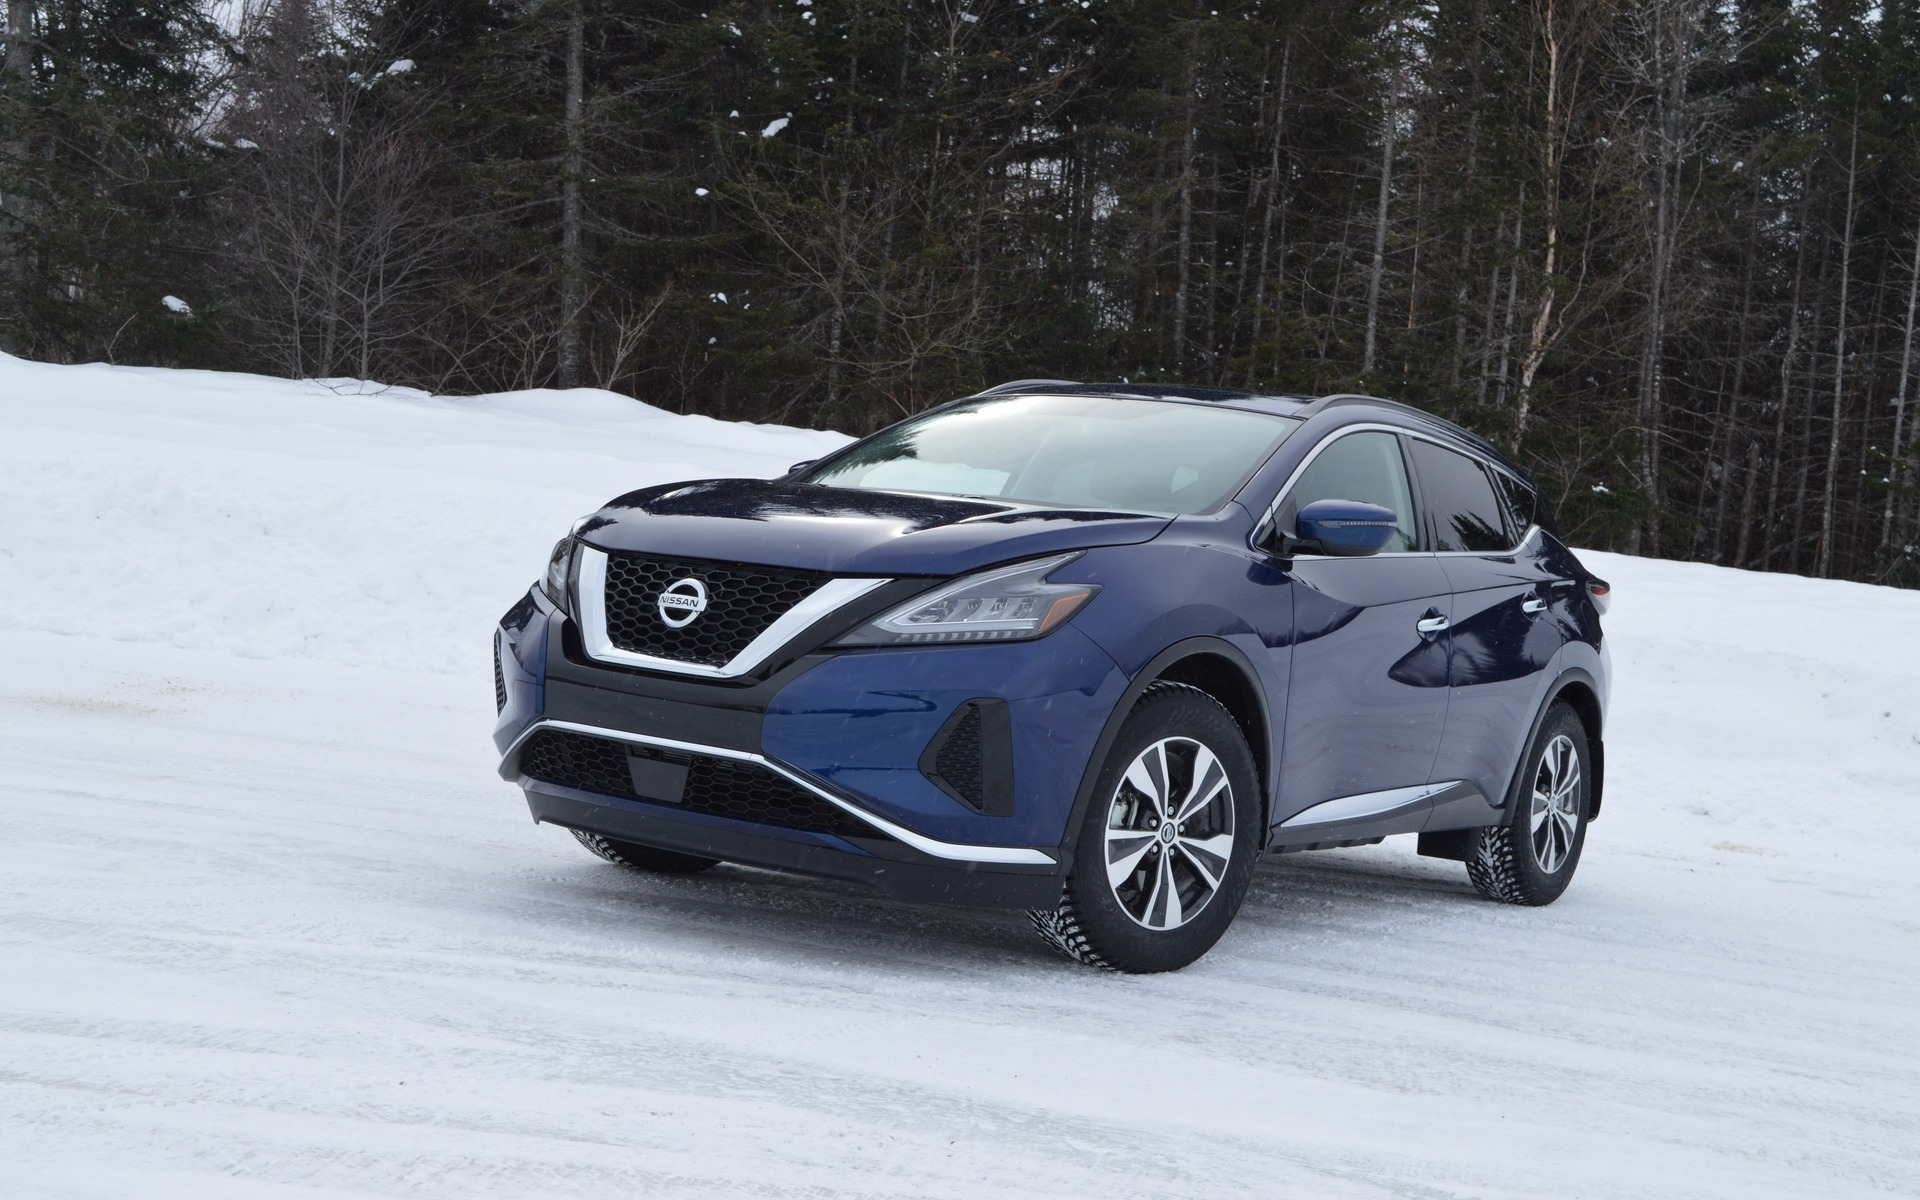 2019 Nissan Murano: Modest Update - The Car Guide